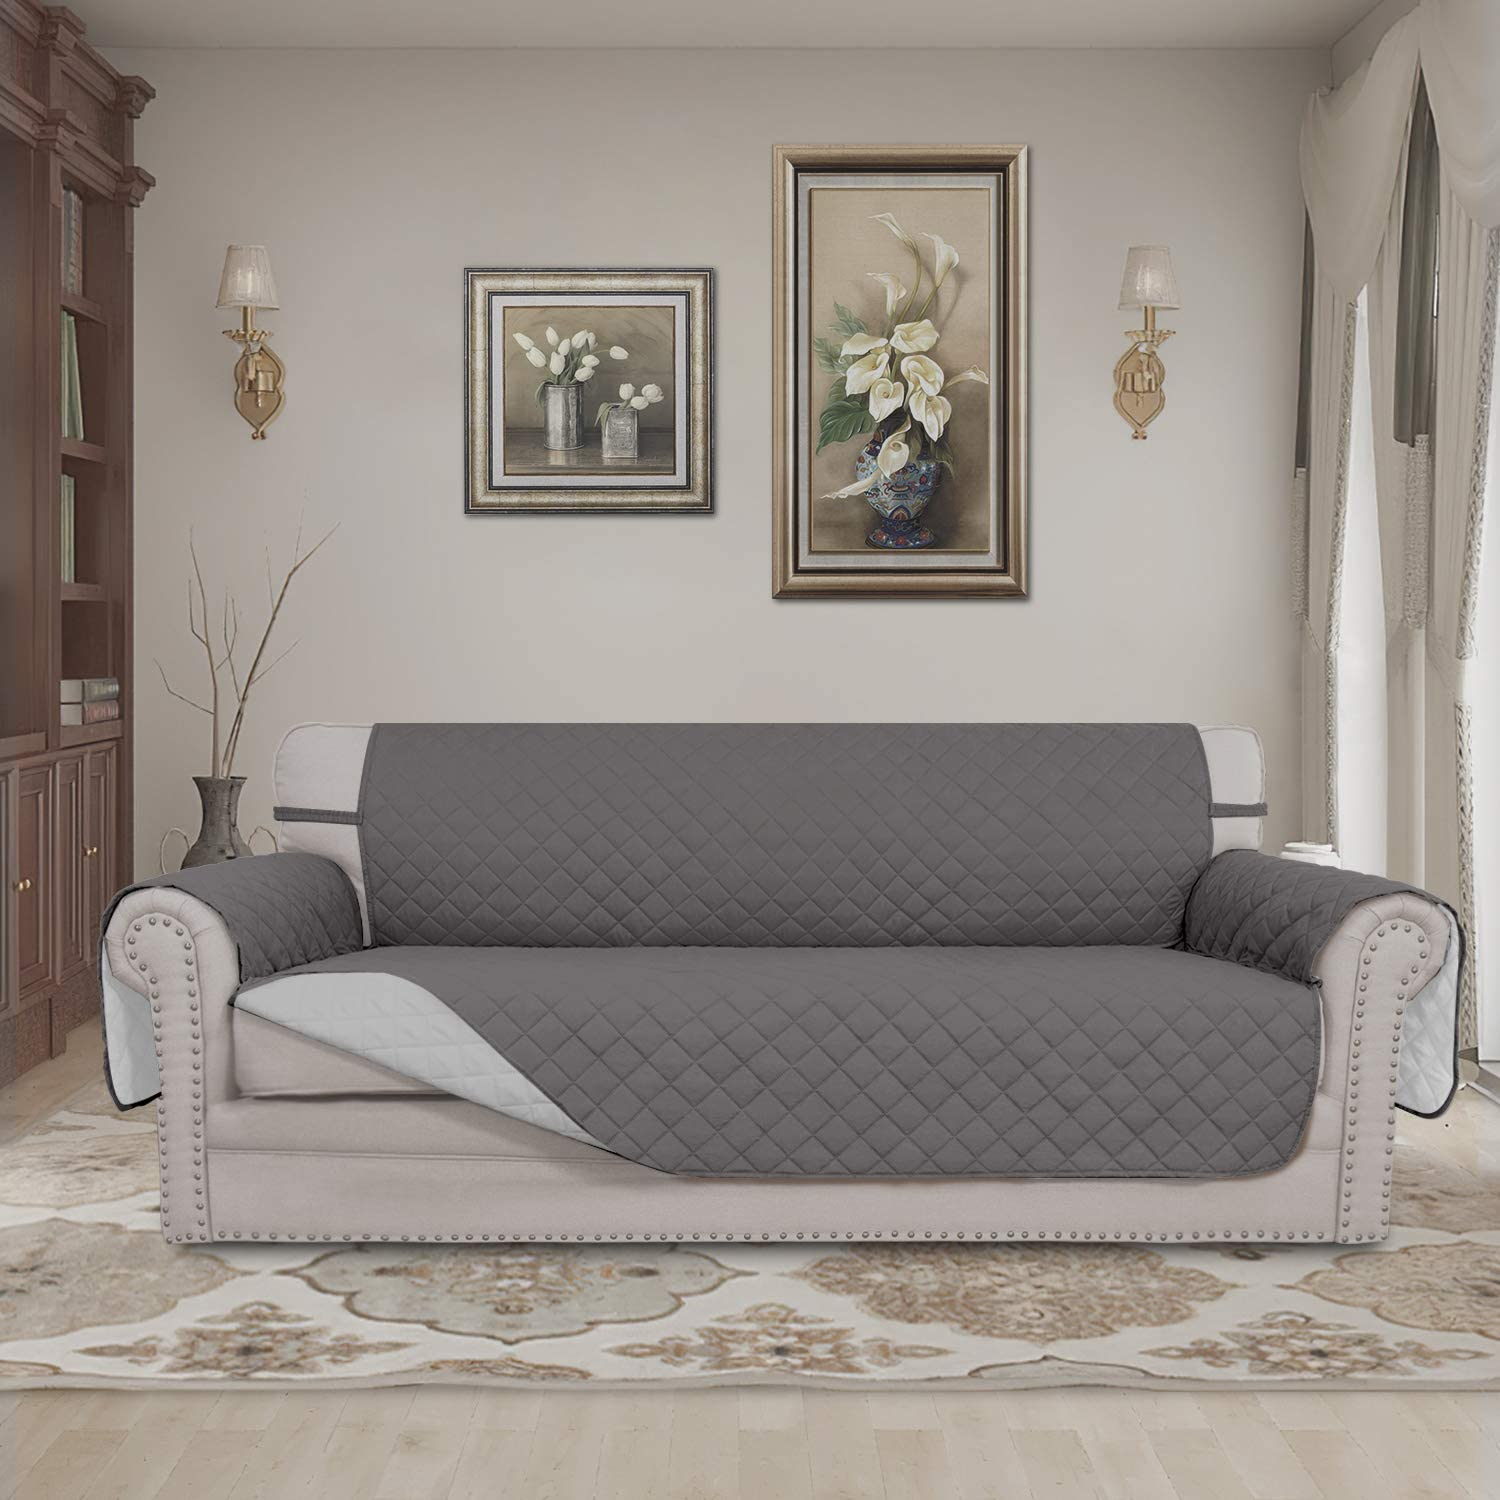 Easy-Going Sofa Slipcover Reversible Sofa Cover Water Resistant Couch Cover Furniture Protector with Elastic Straps for Pets Kids Children Dog Cat(Sofa, Gray/Light Gray): Kitchen & Dining